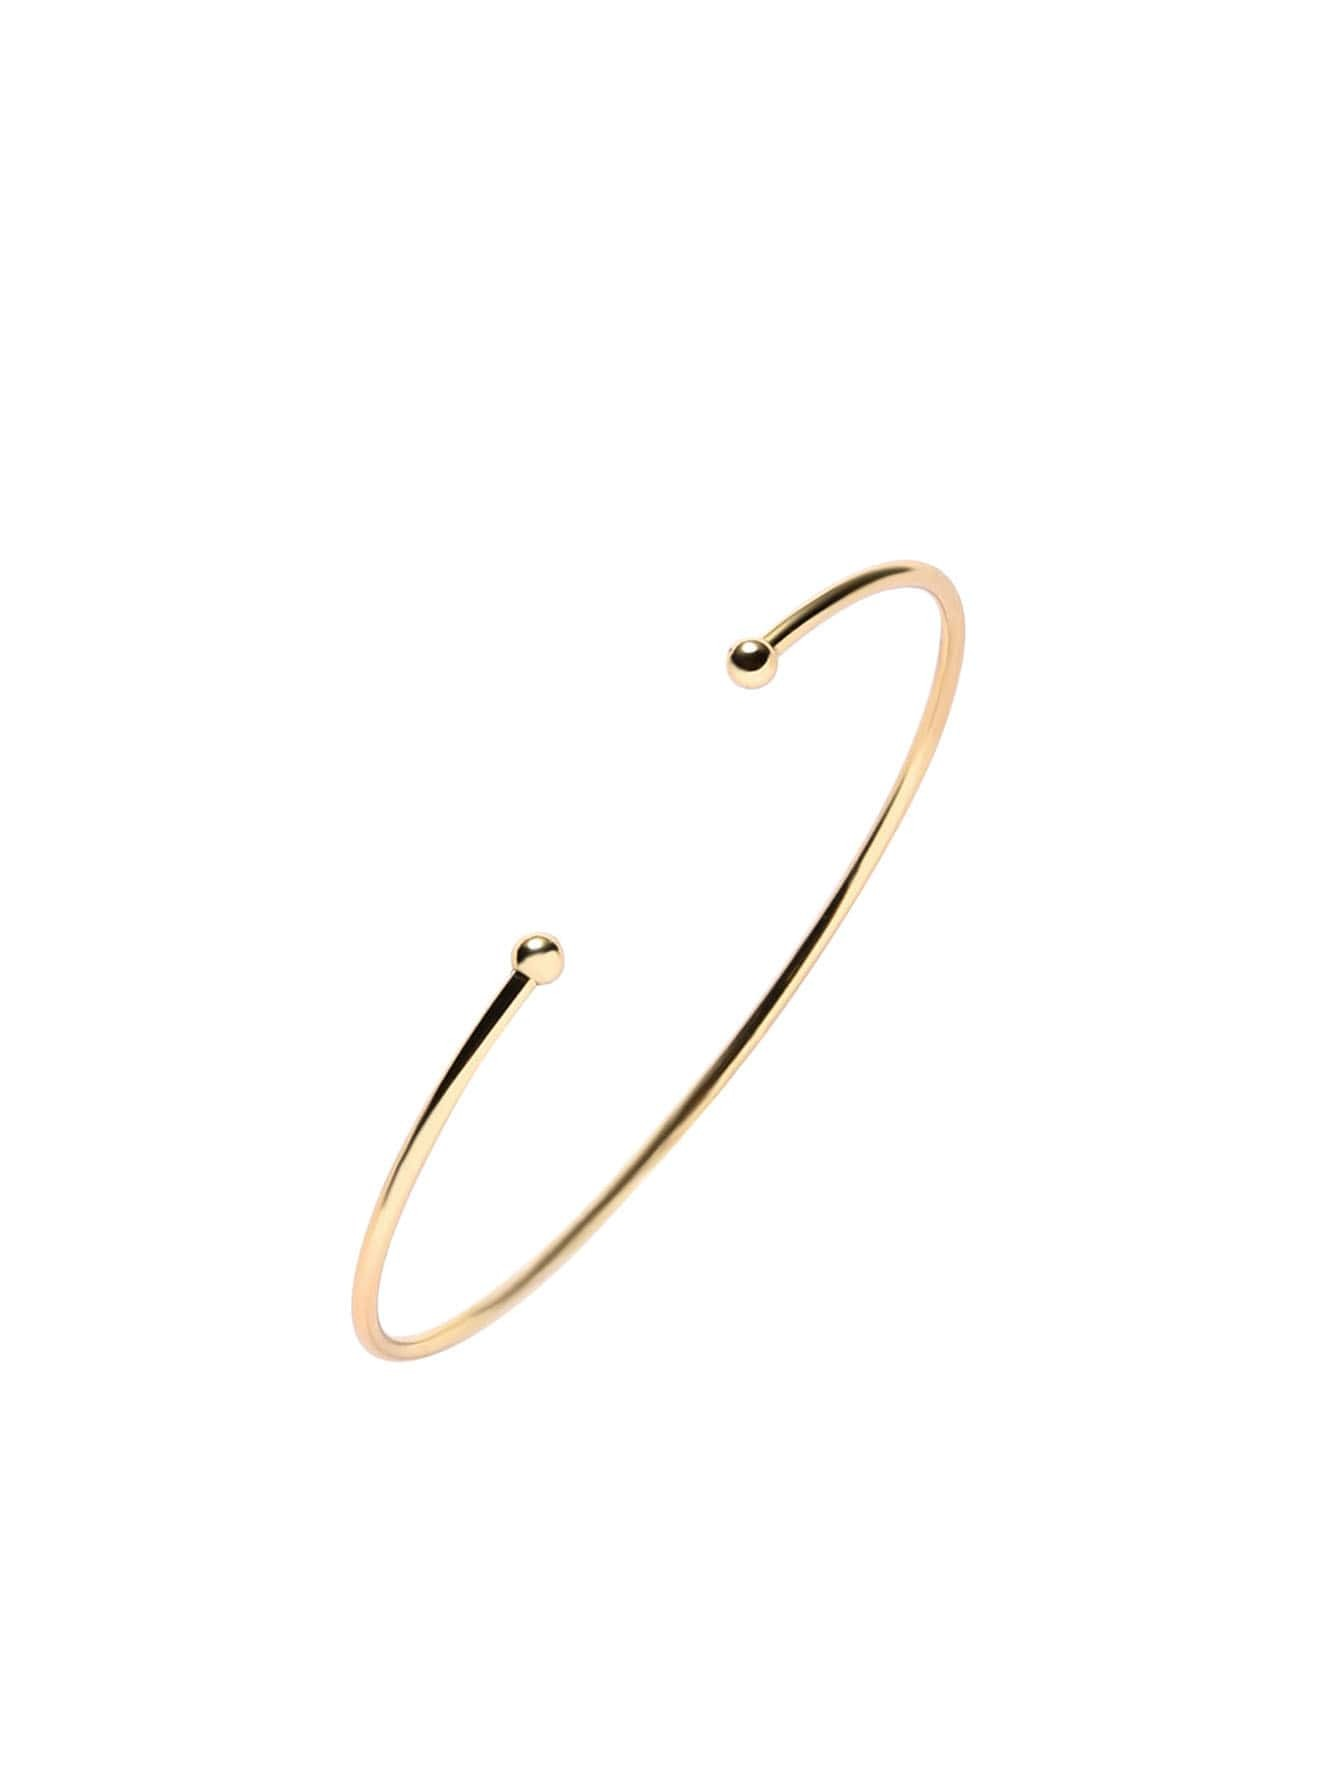 Buy Gold Plated Metal Smooth Design Wrap Bangle